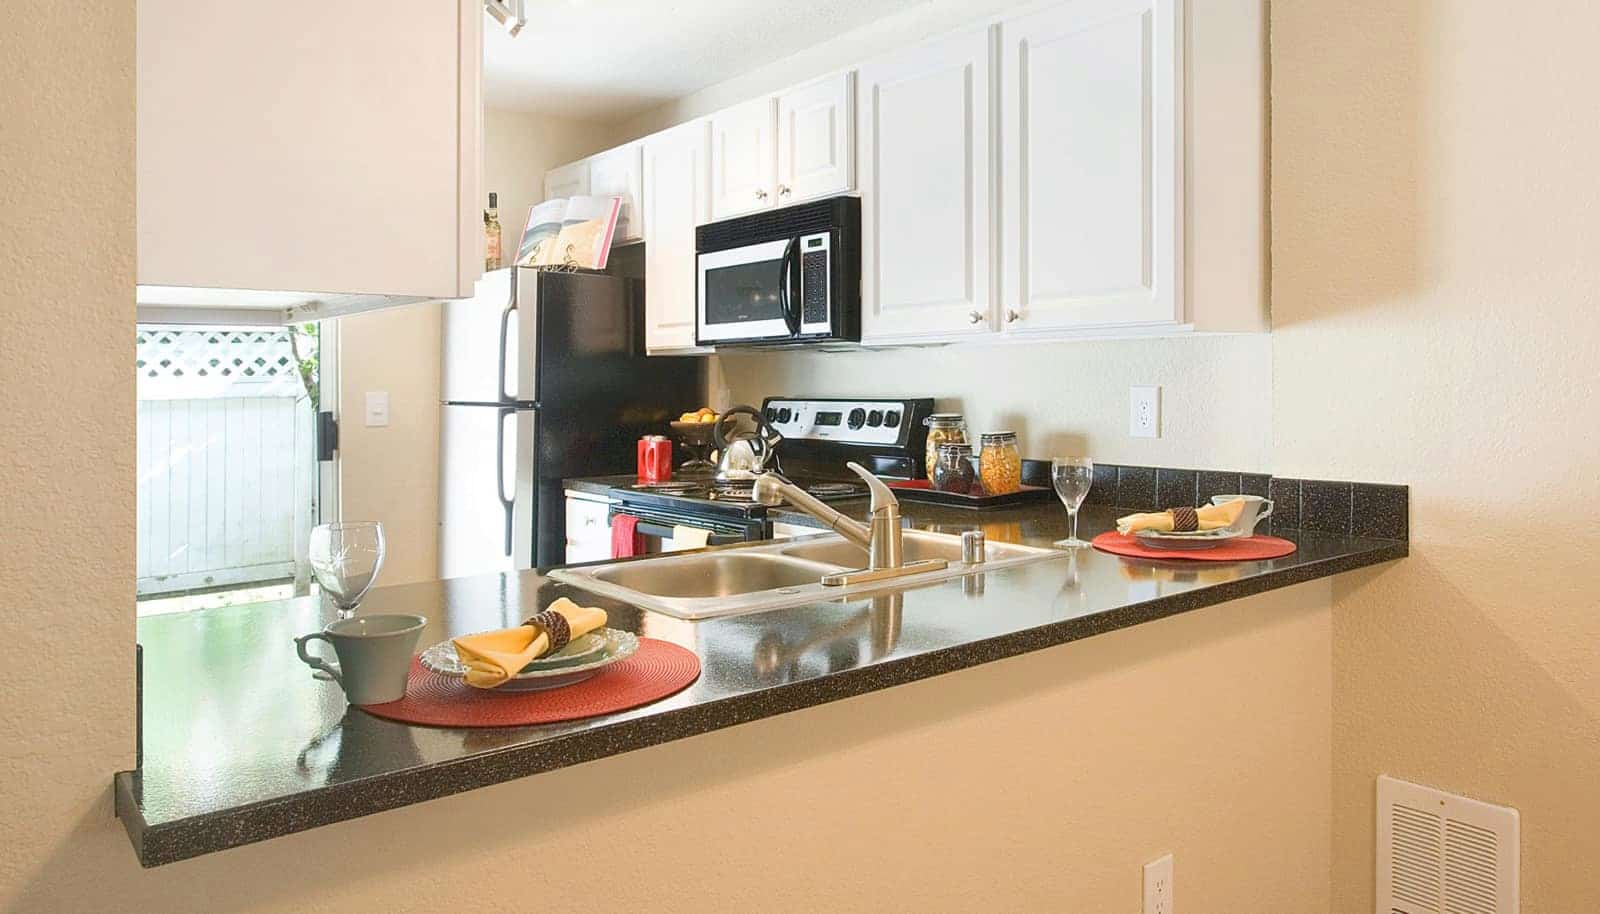 Ktichen with stainless steel appliances, black countertops, and white cabinets.